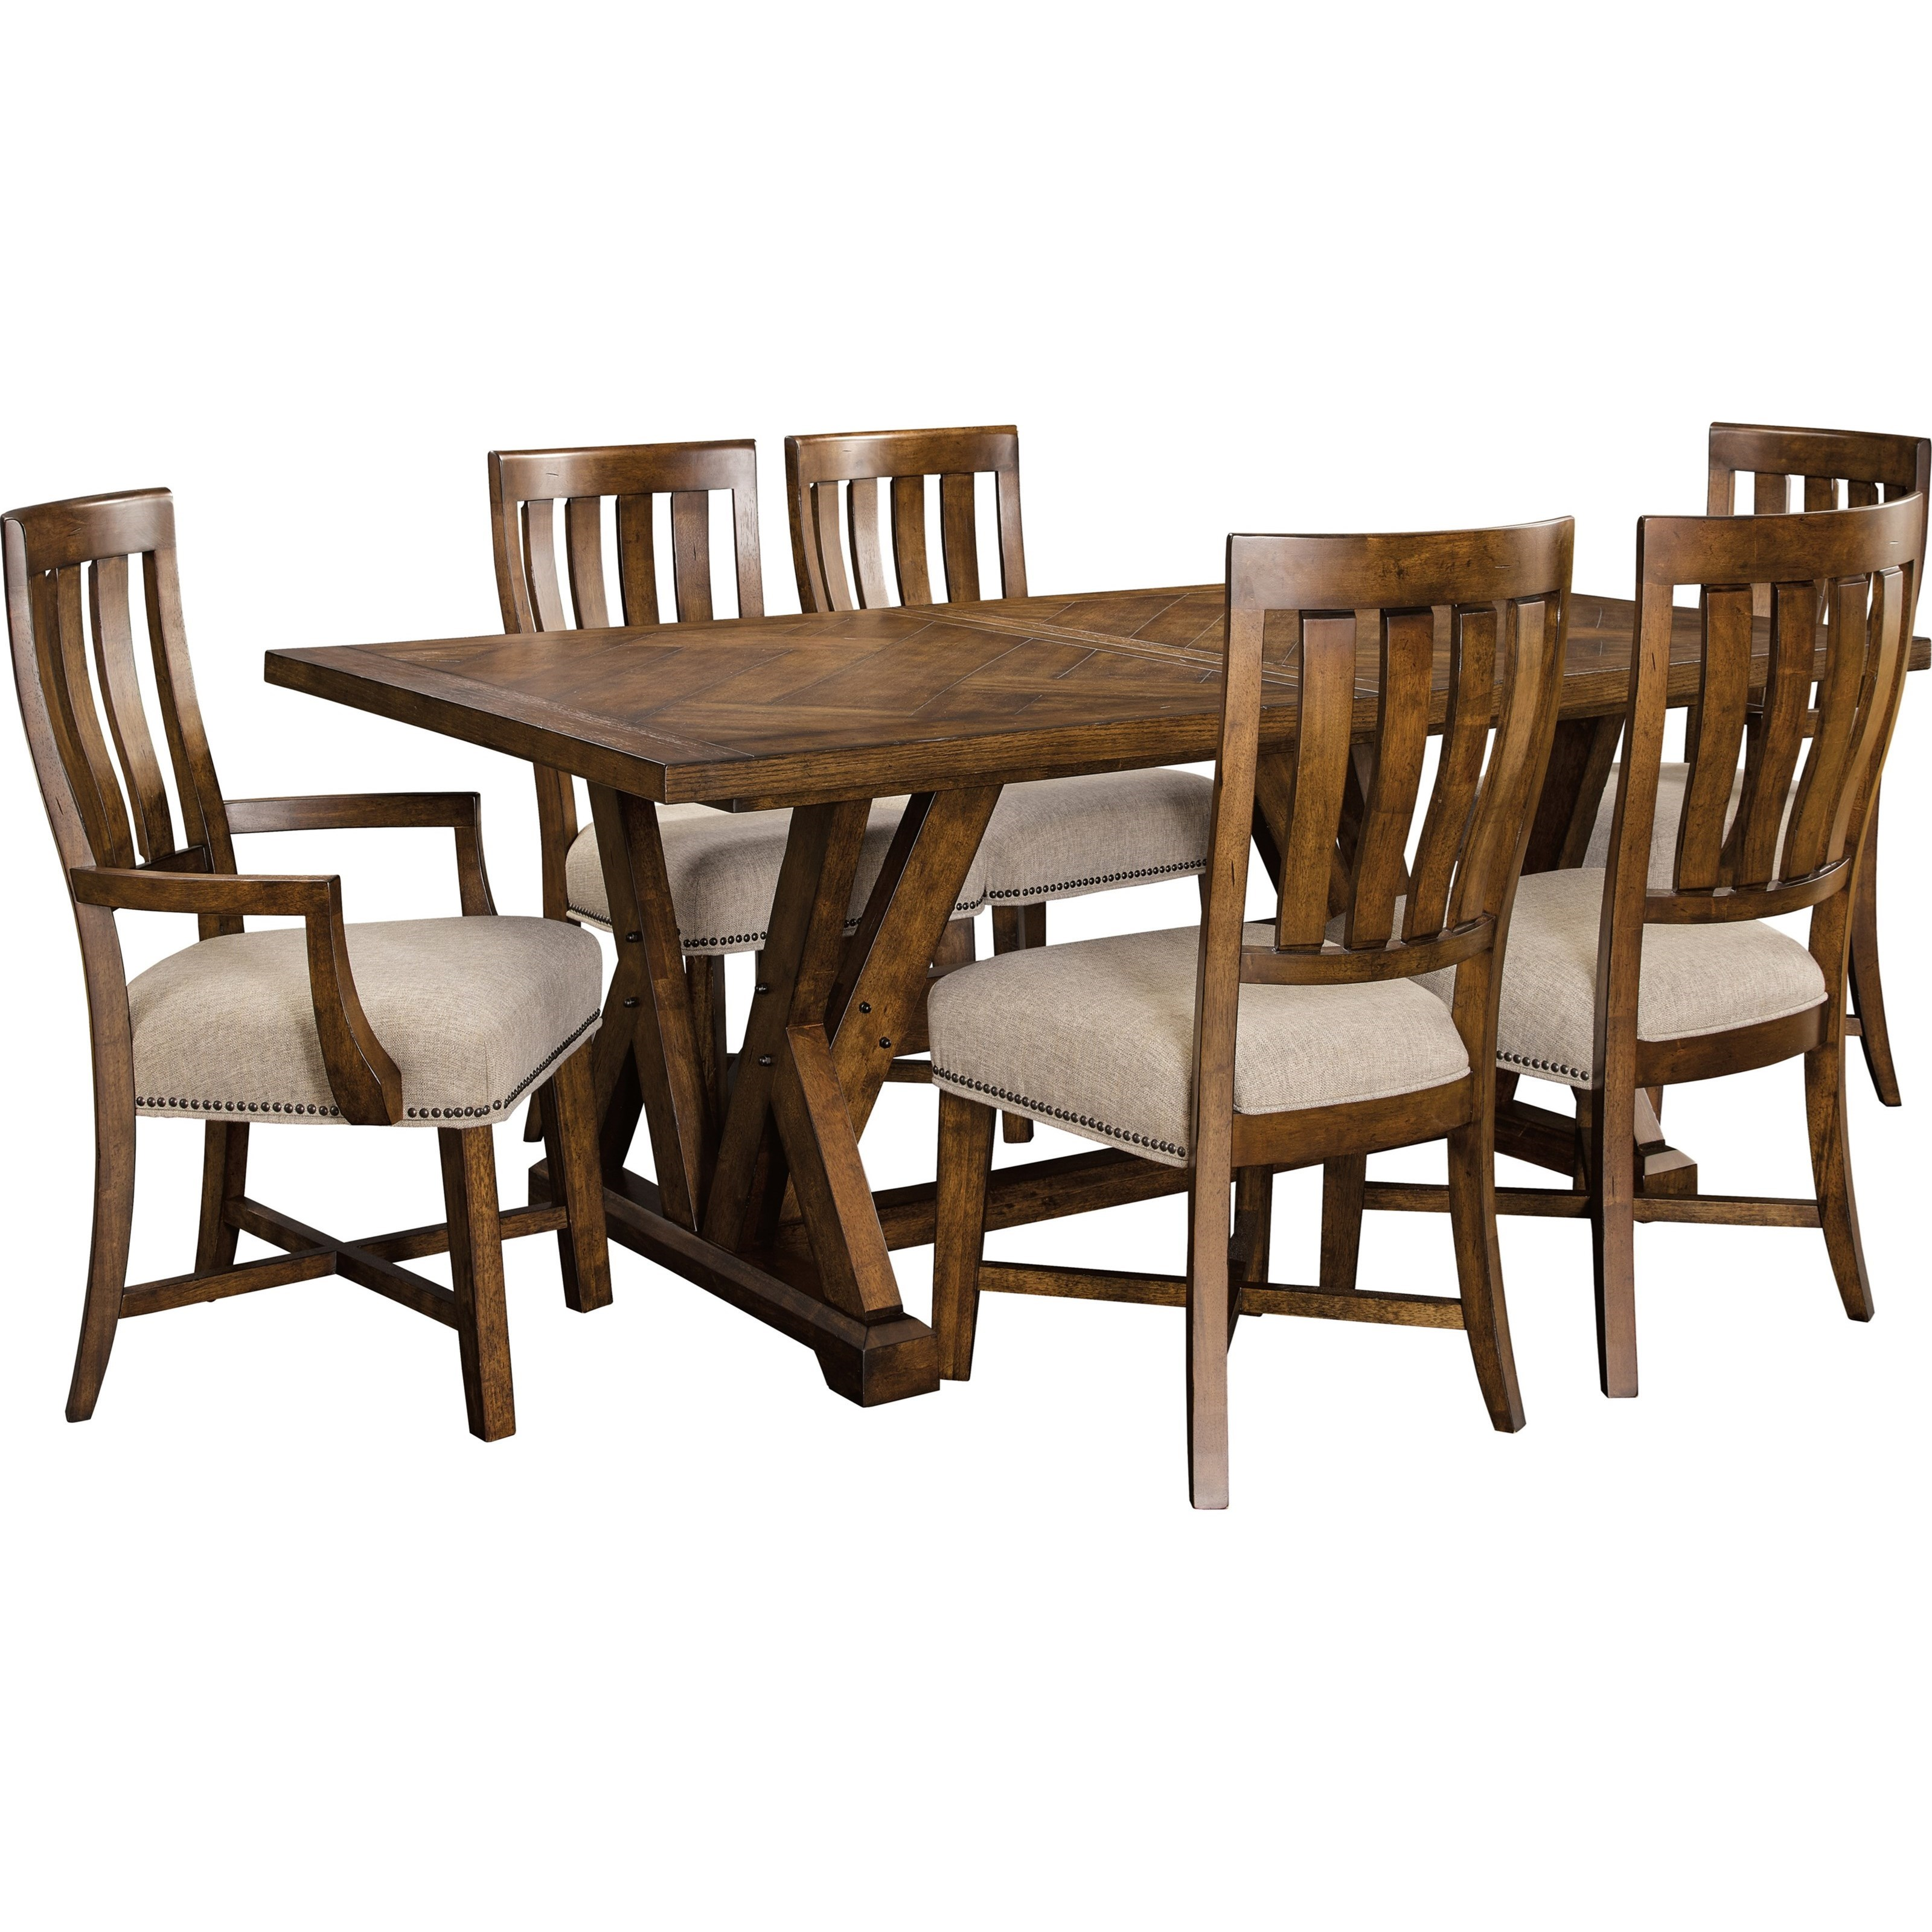 Broyhill Furniture Pieceworks Rustic 7 Piece Trestle Table And Upholstered Seat Chair Set Ahfa